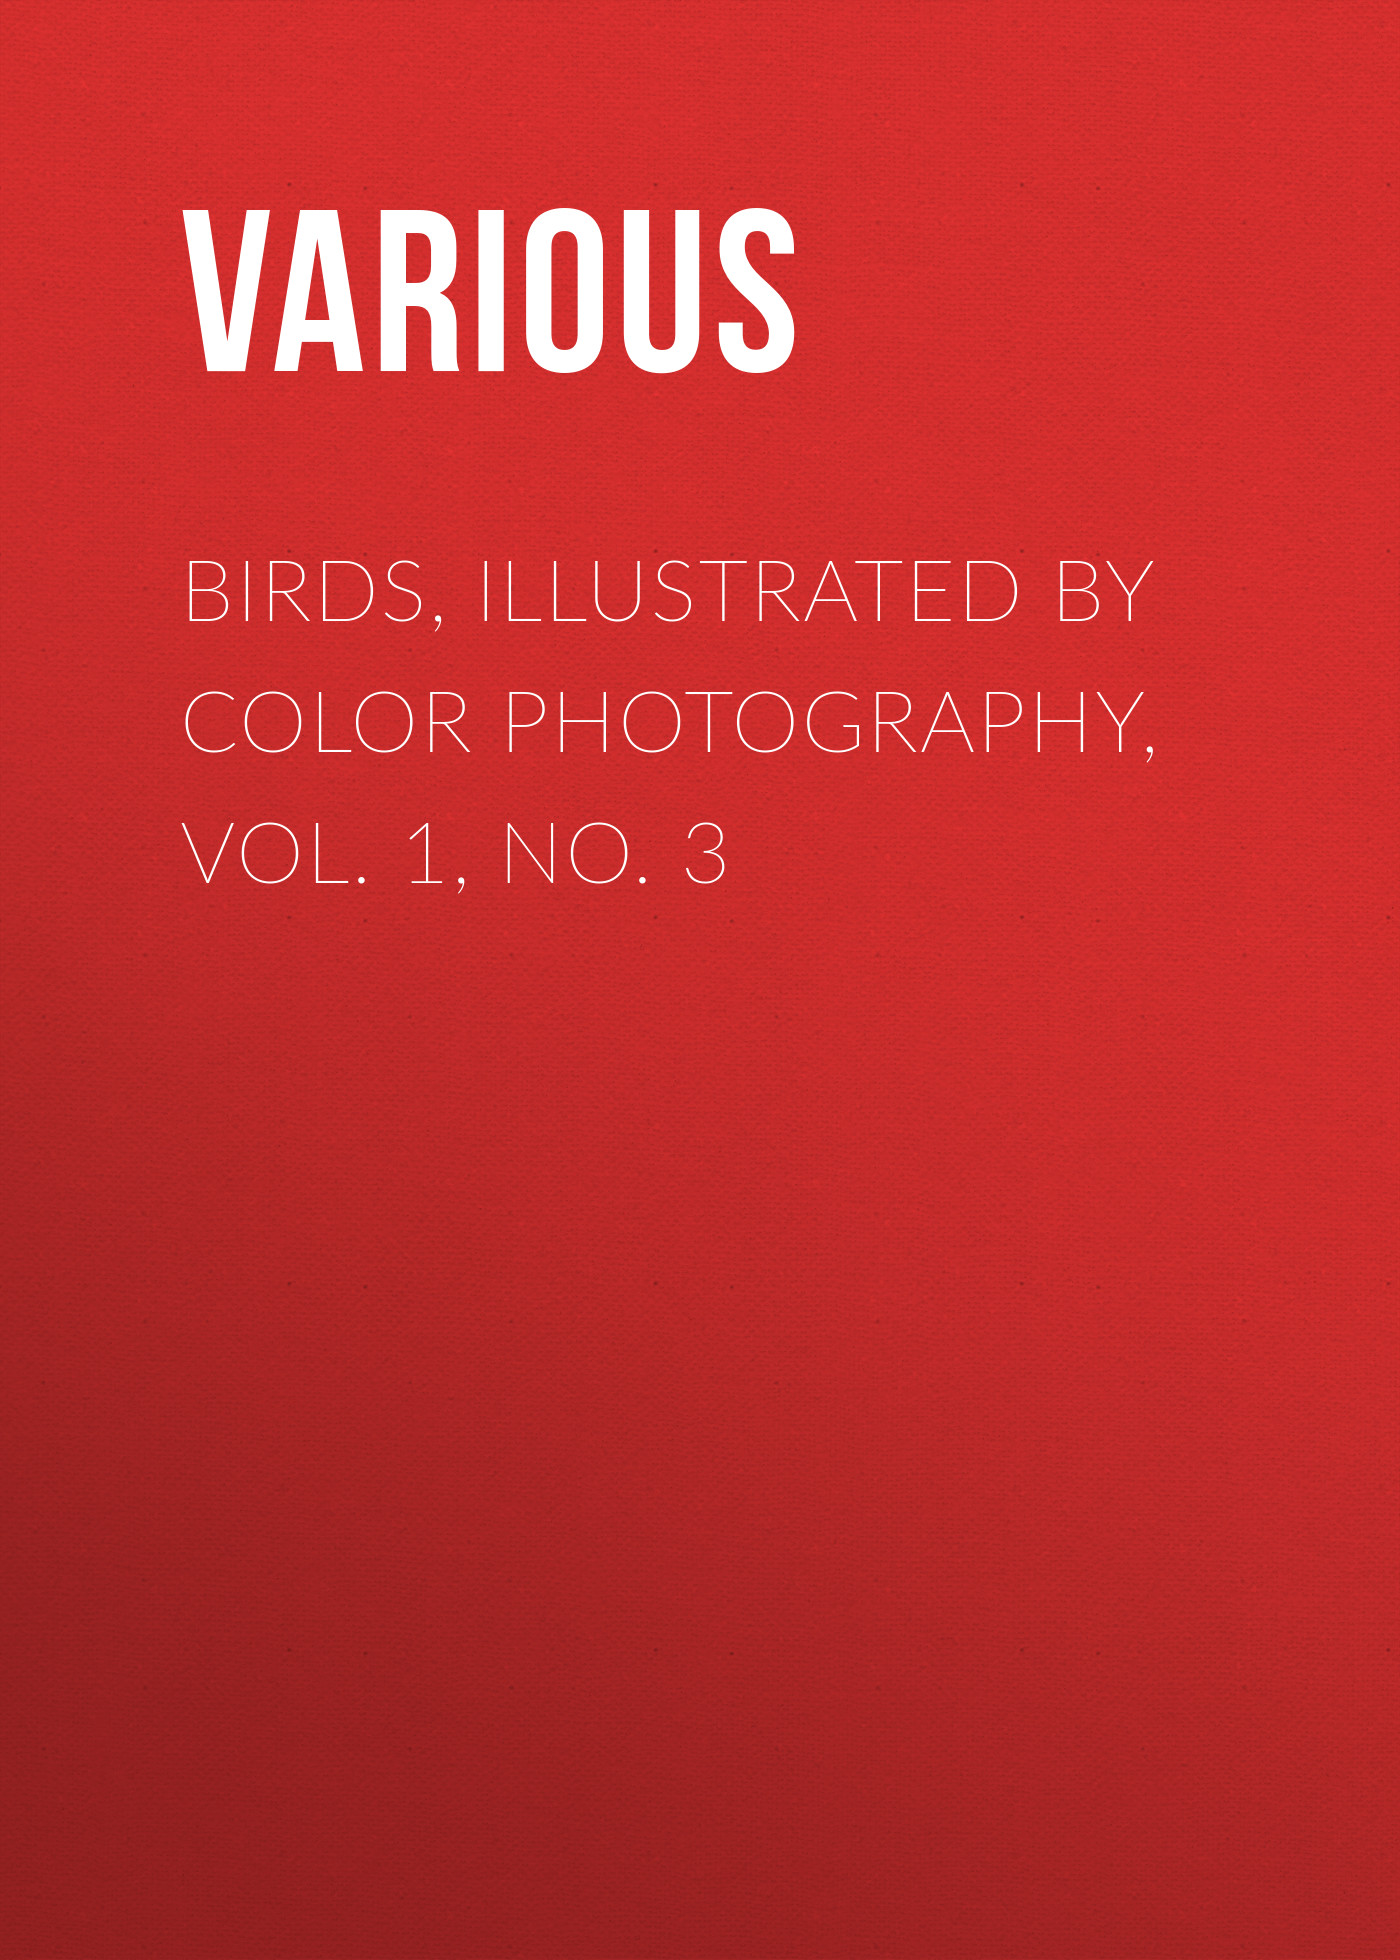 Various Birds, Illustrated by Color Photography, Vol. 1, No. 3 шорты женские columbia sandy river printed short цвет синий 1712001 498 размер xs 42